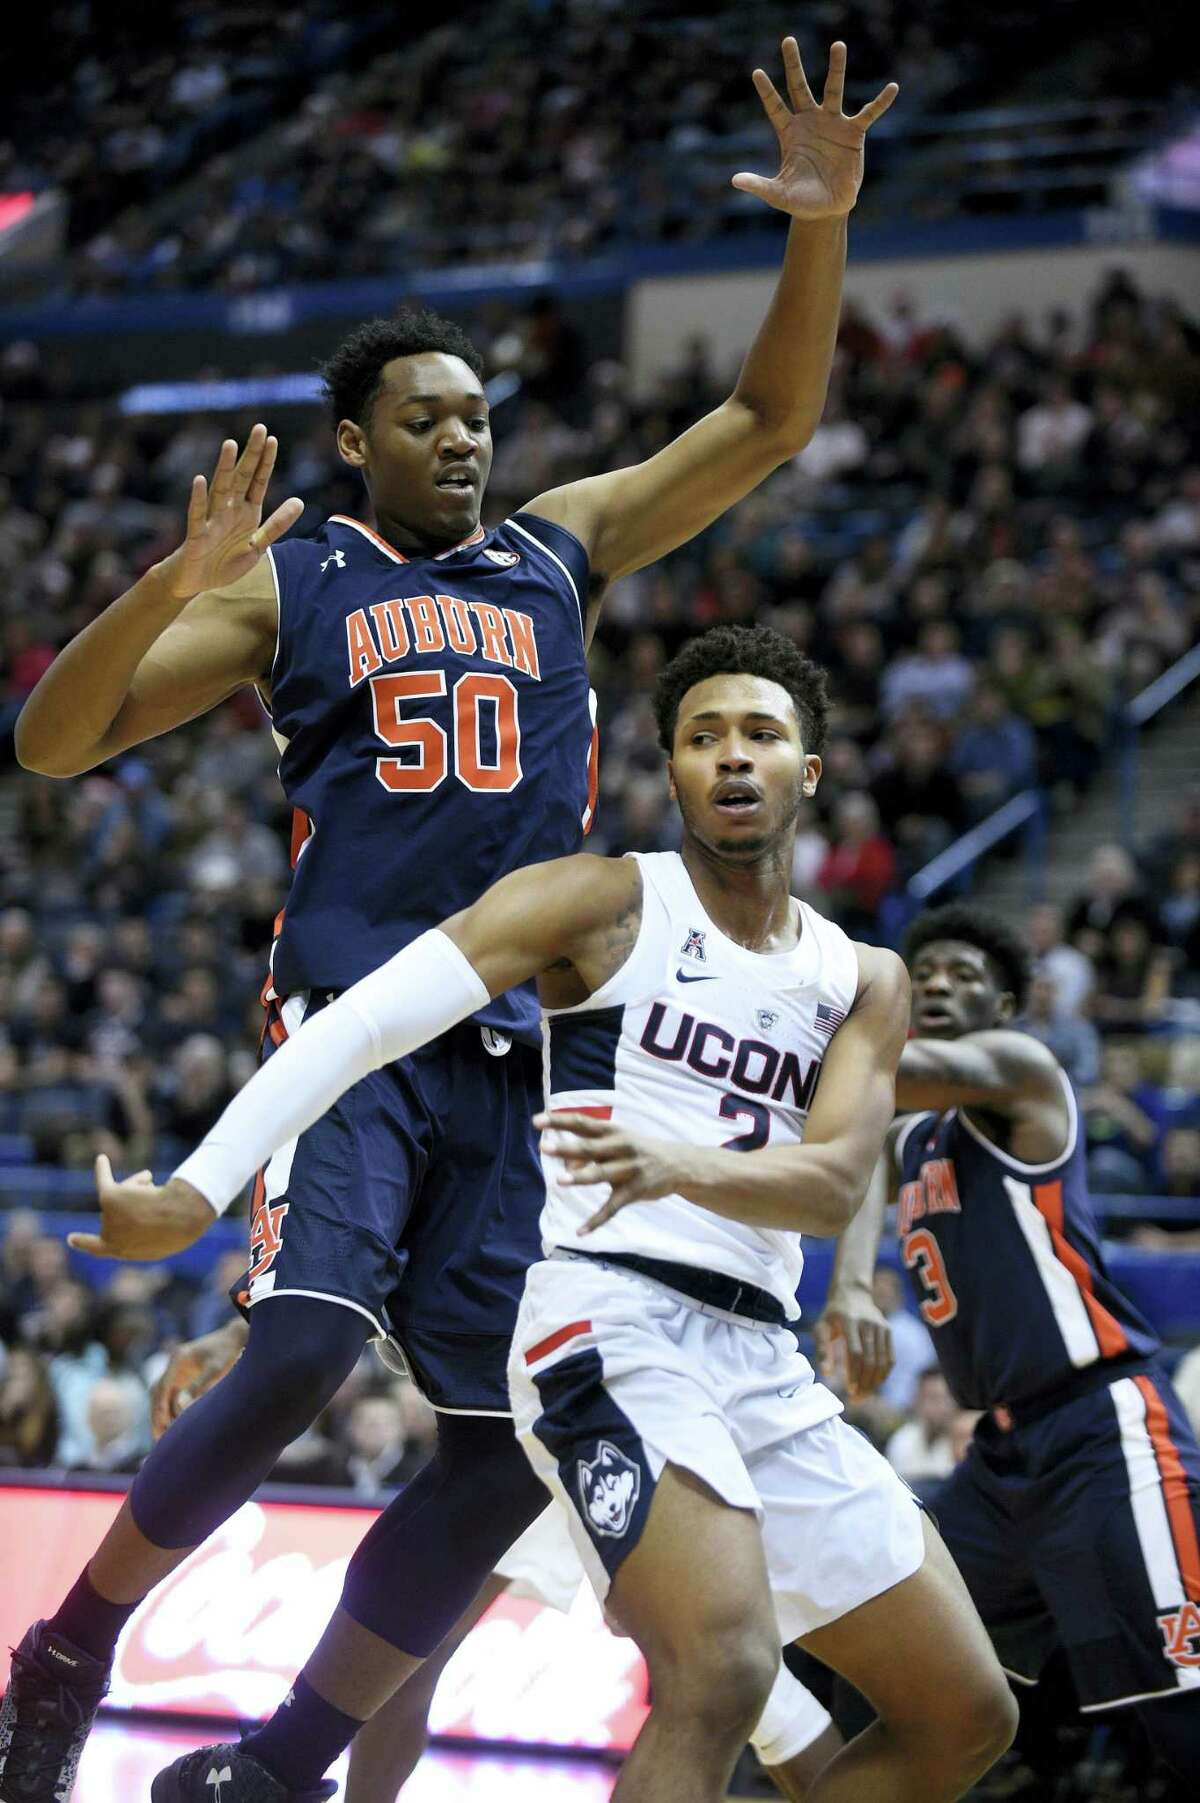 Connecticut's Jalen Adams (2) is guarded by Auburn's Austin Wiley (50). Adams suffered a concussion during Friday's overtime loss to Auburn.